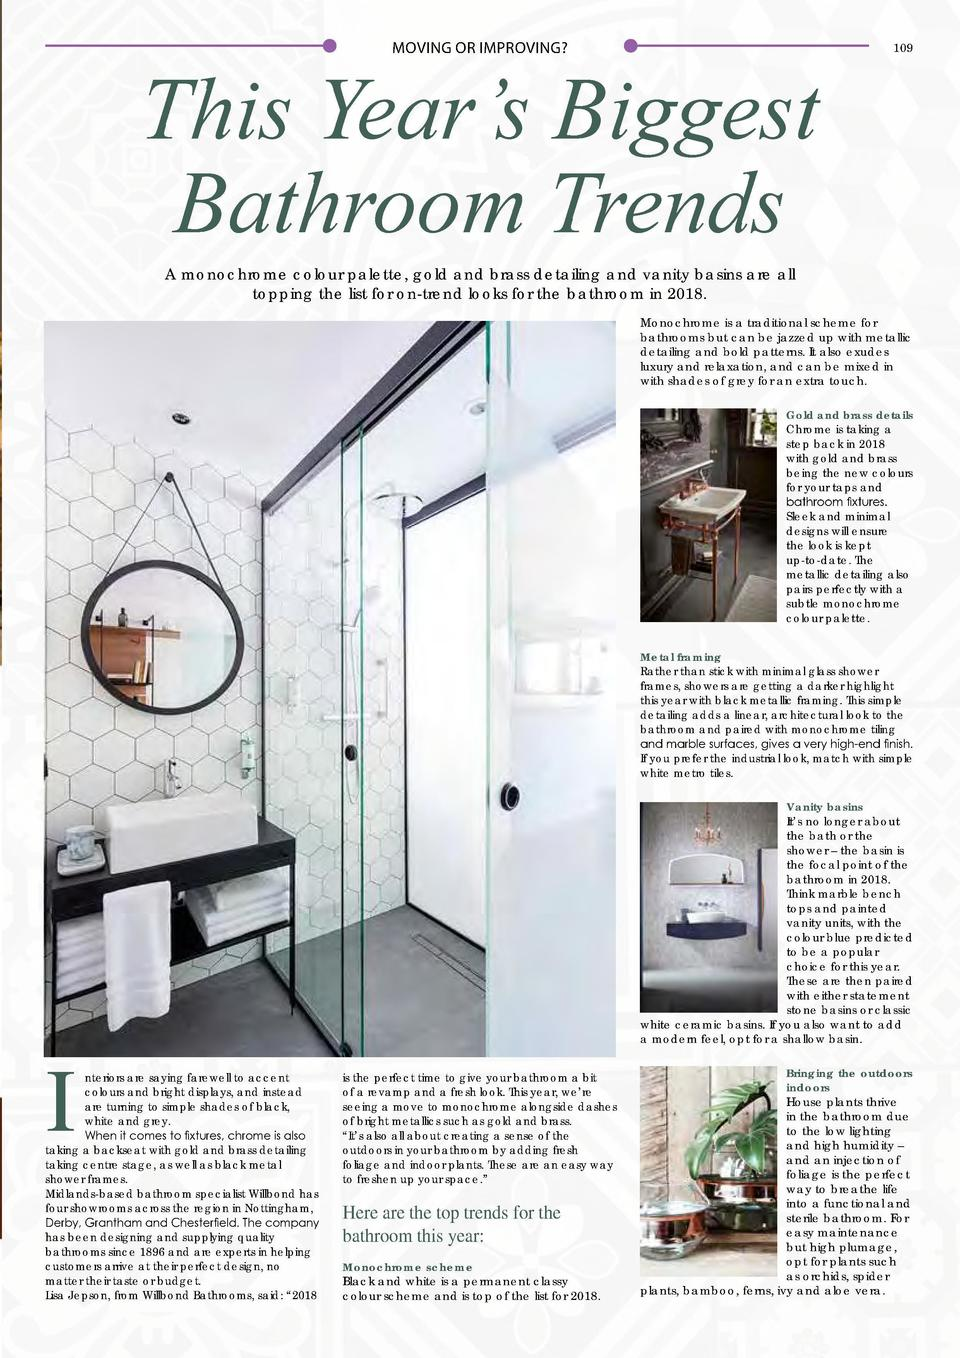 MOVING OR IMPROVING   This Year   s Biggest Bathroom Trends  109  A monochrome colour palette, gold and brass detailing an...